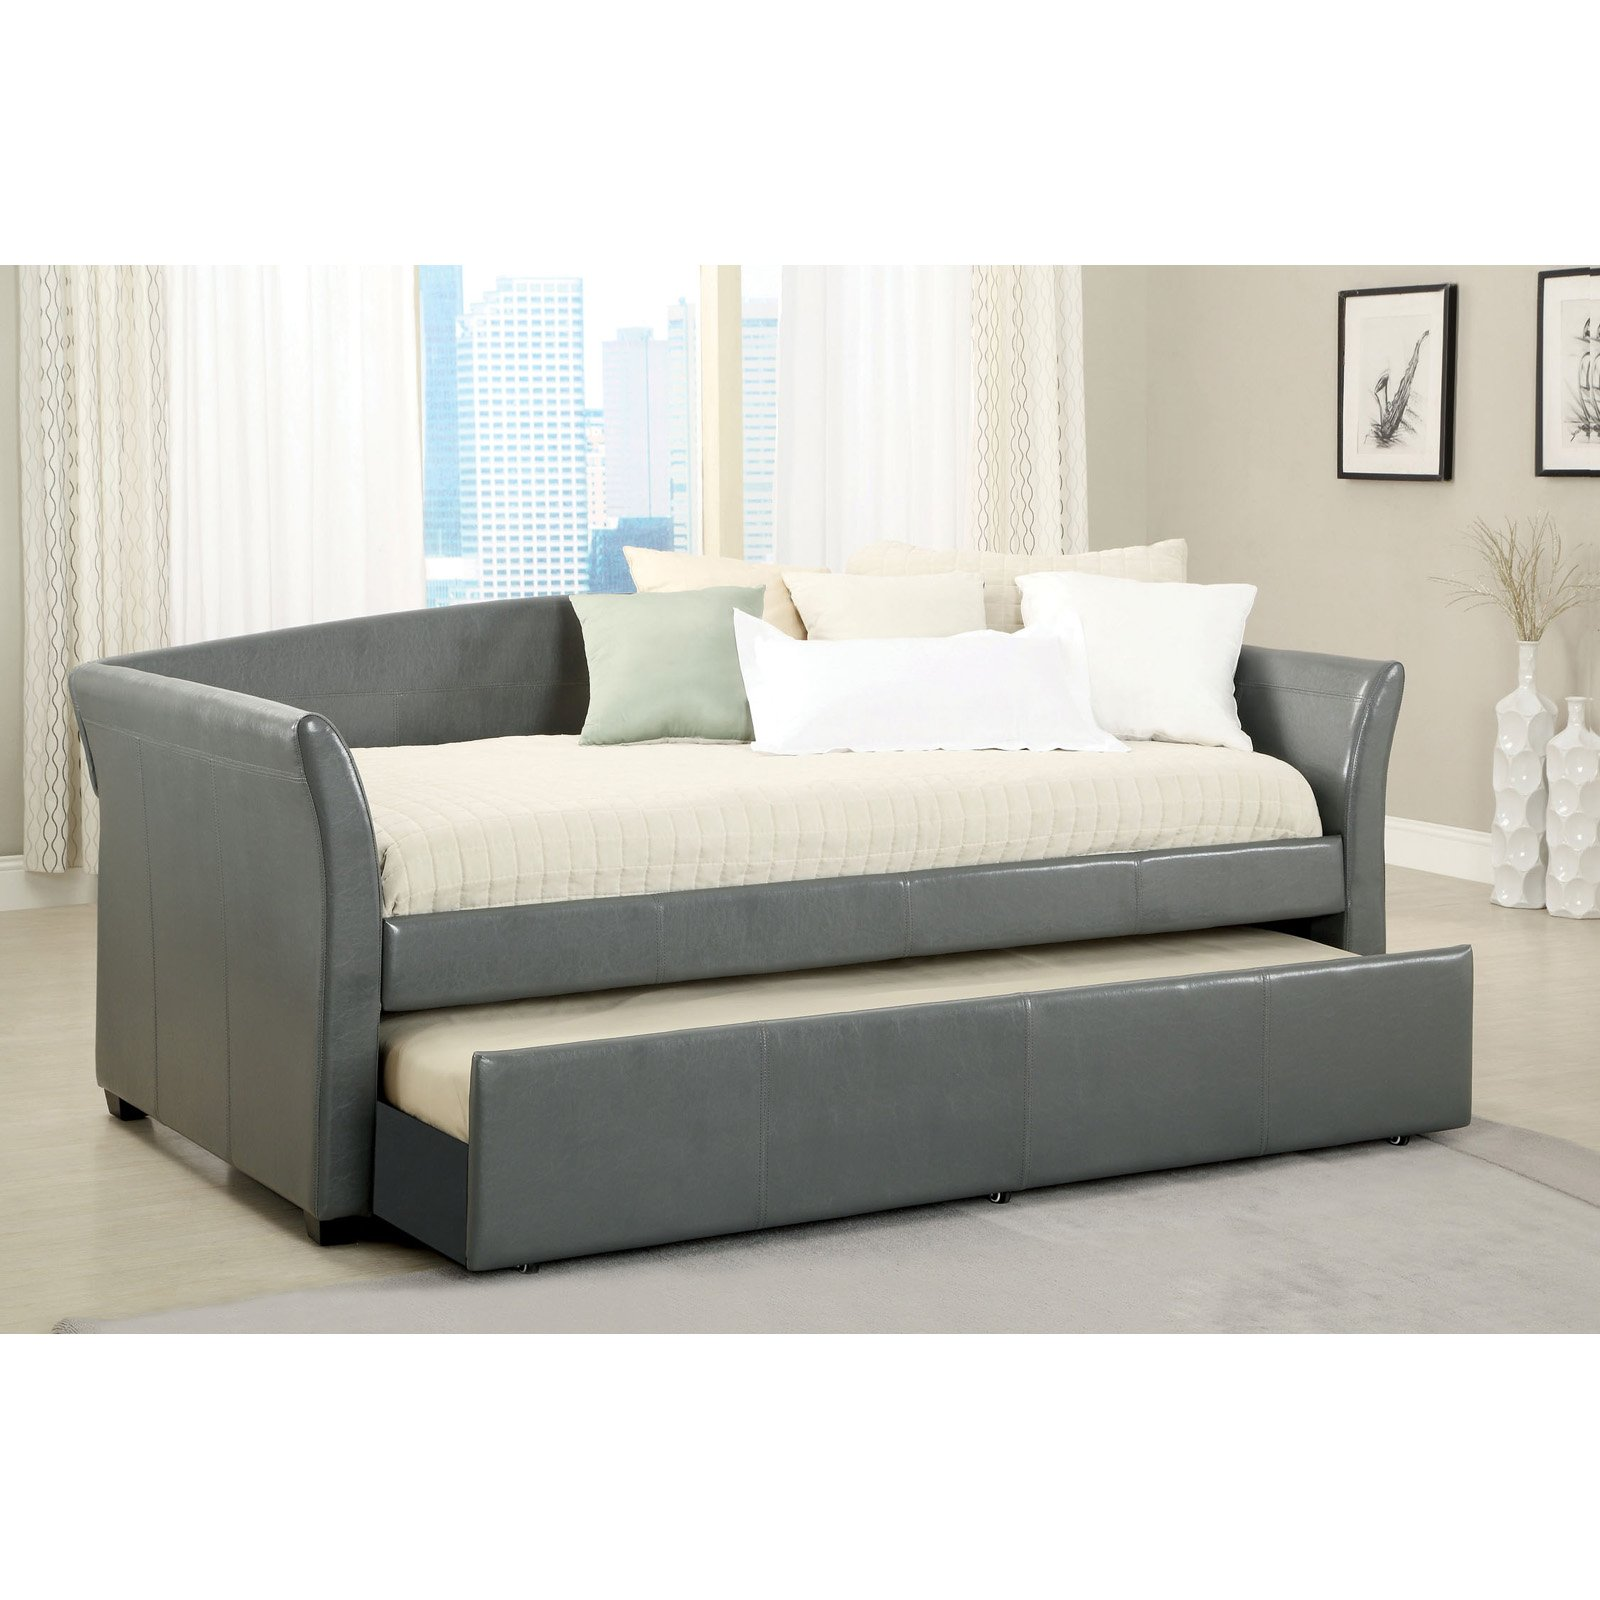 daybed trundle ikea a multiple purpose furniture homesfeed. Black Bedroom Furniture Sets. Home Design Ideas